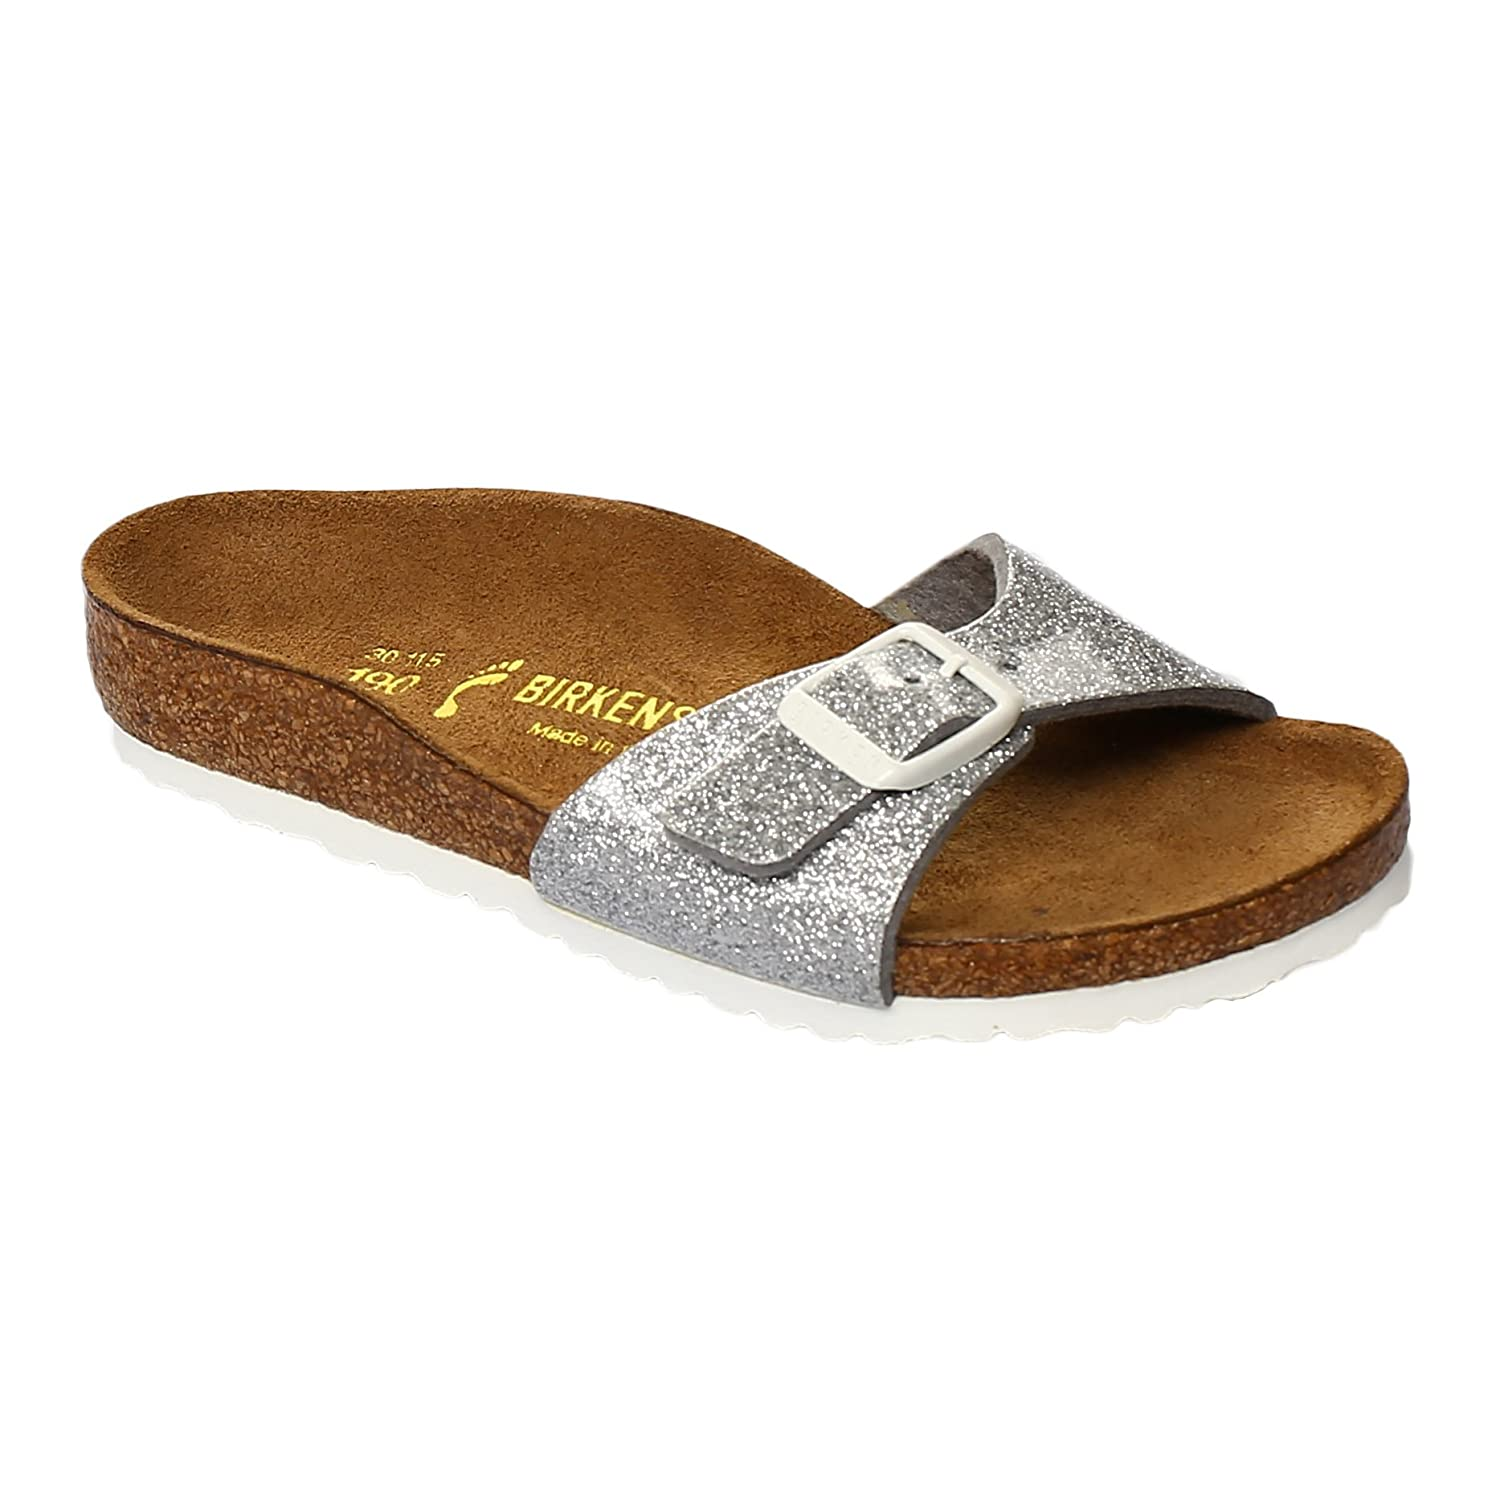 Birkenstock Madrid Magic Galaxy Silver, grey: Amazon.co.uk